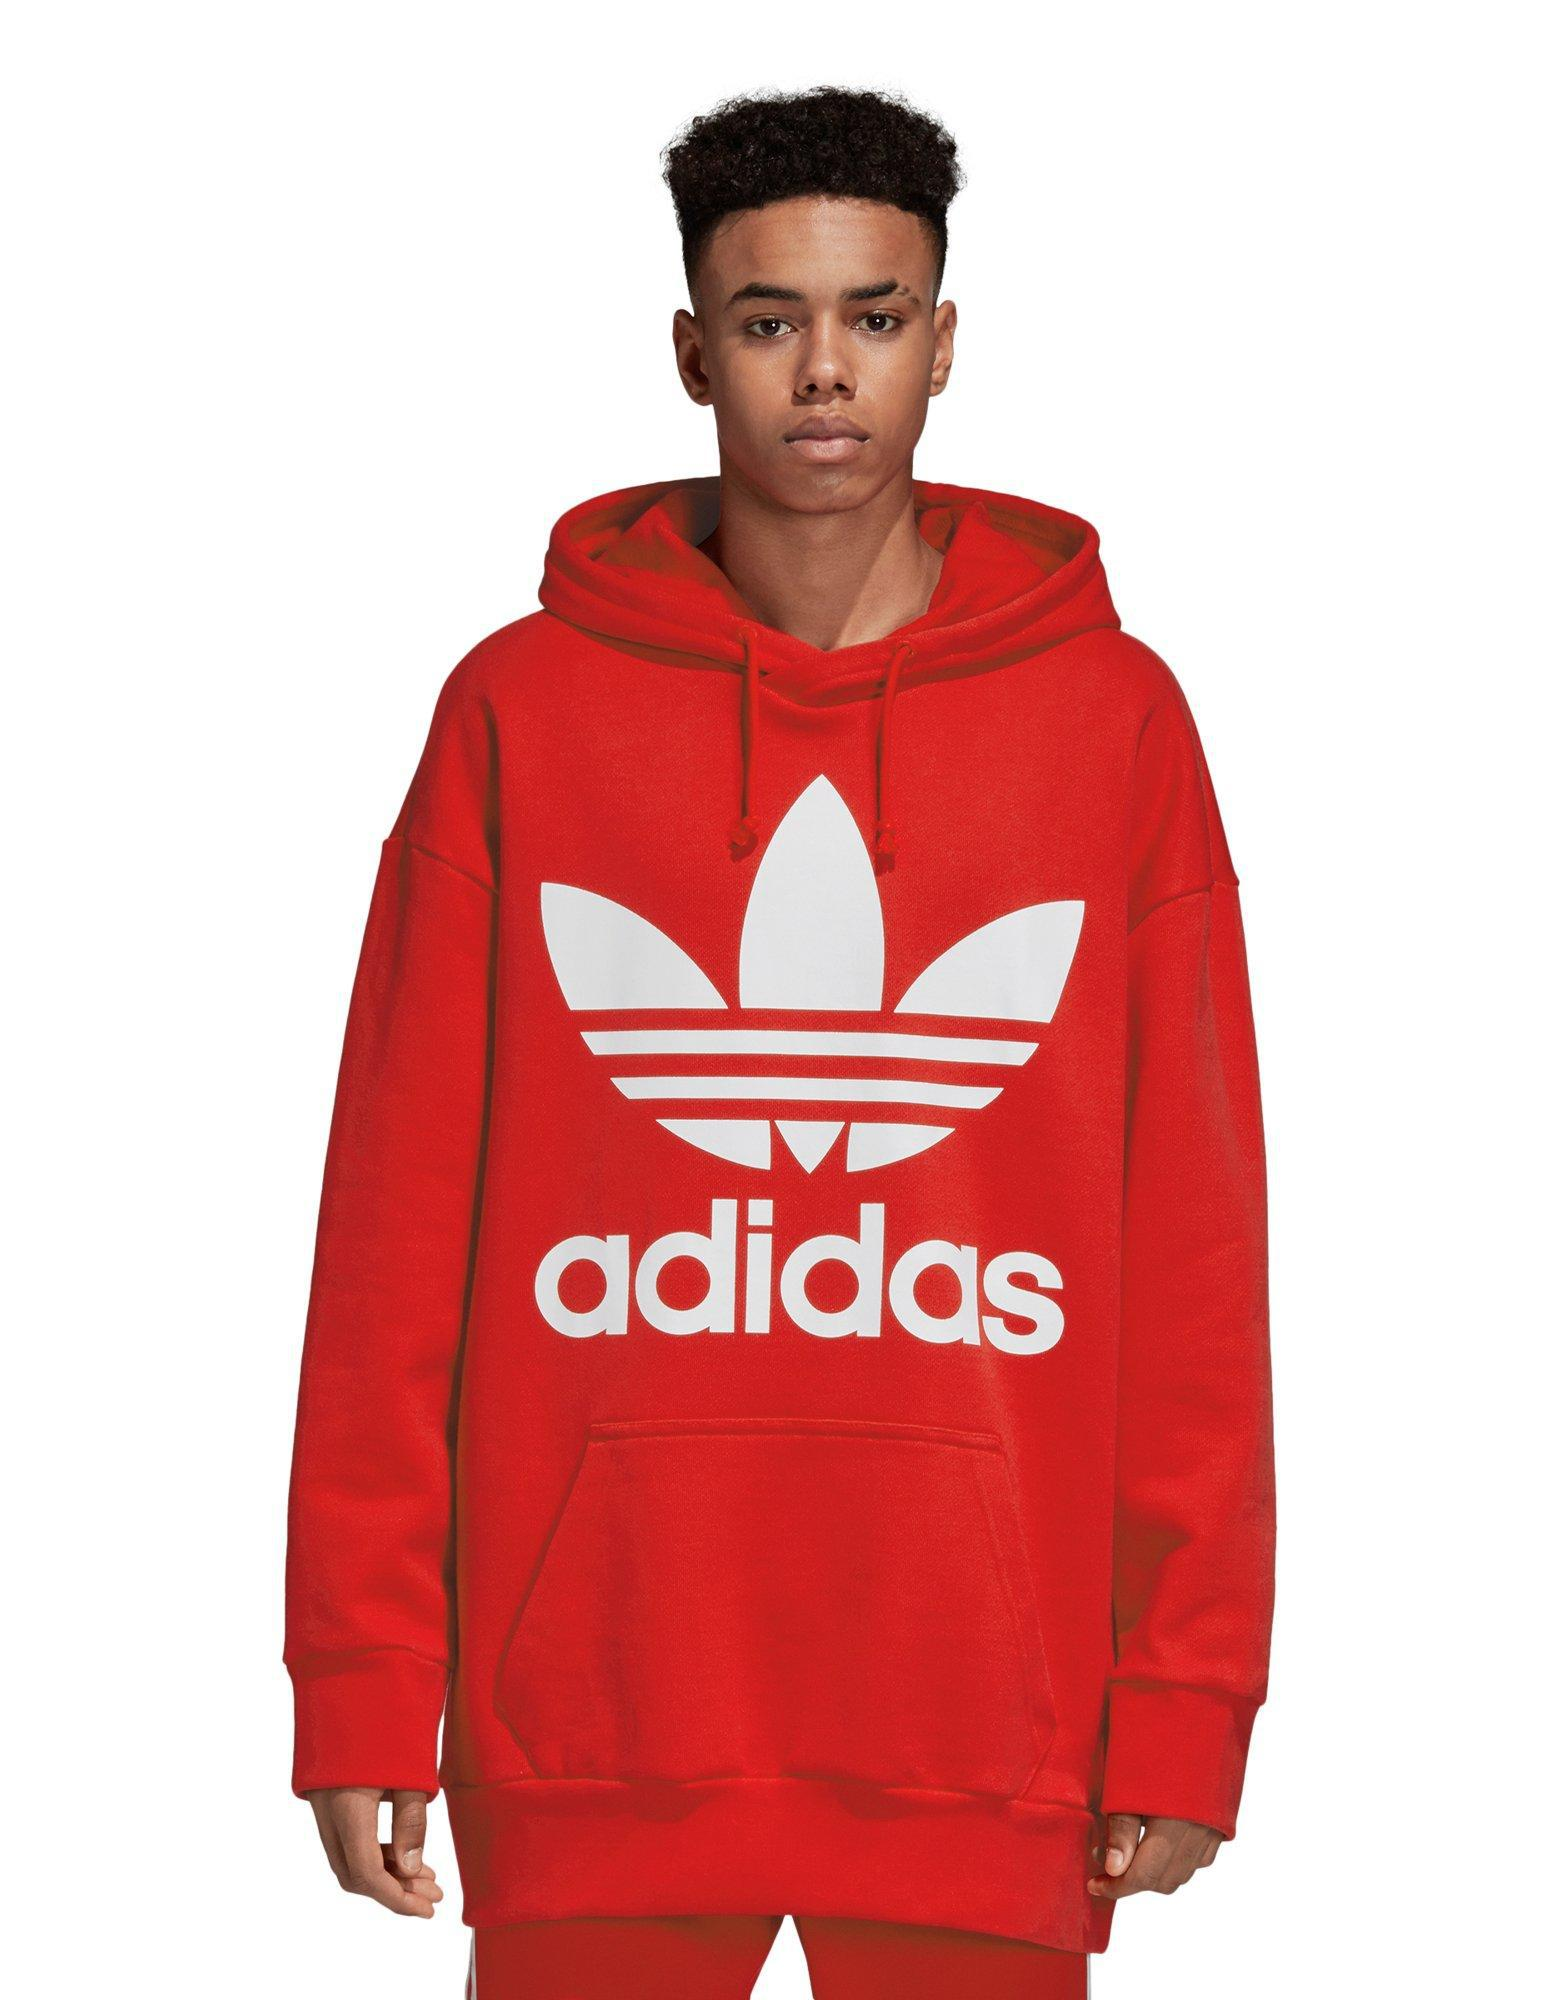 e0dc363fe6bd0 Adidas Trefoil Oversize Hoodie in Red for Men - Lyst